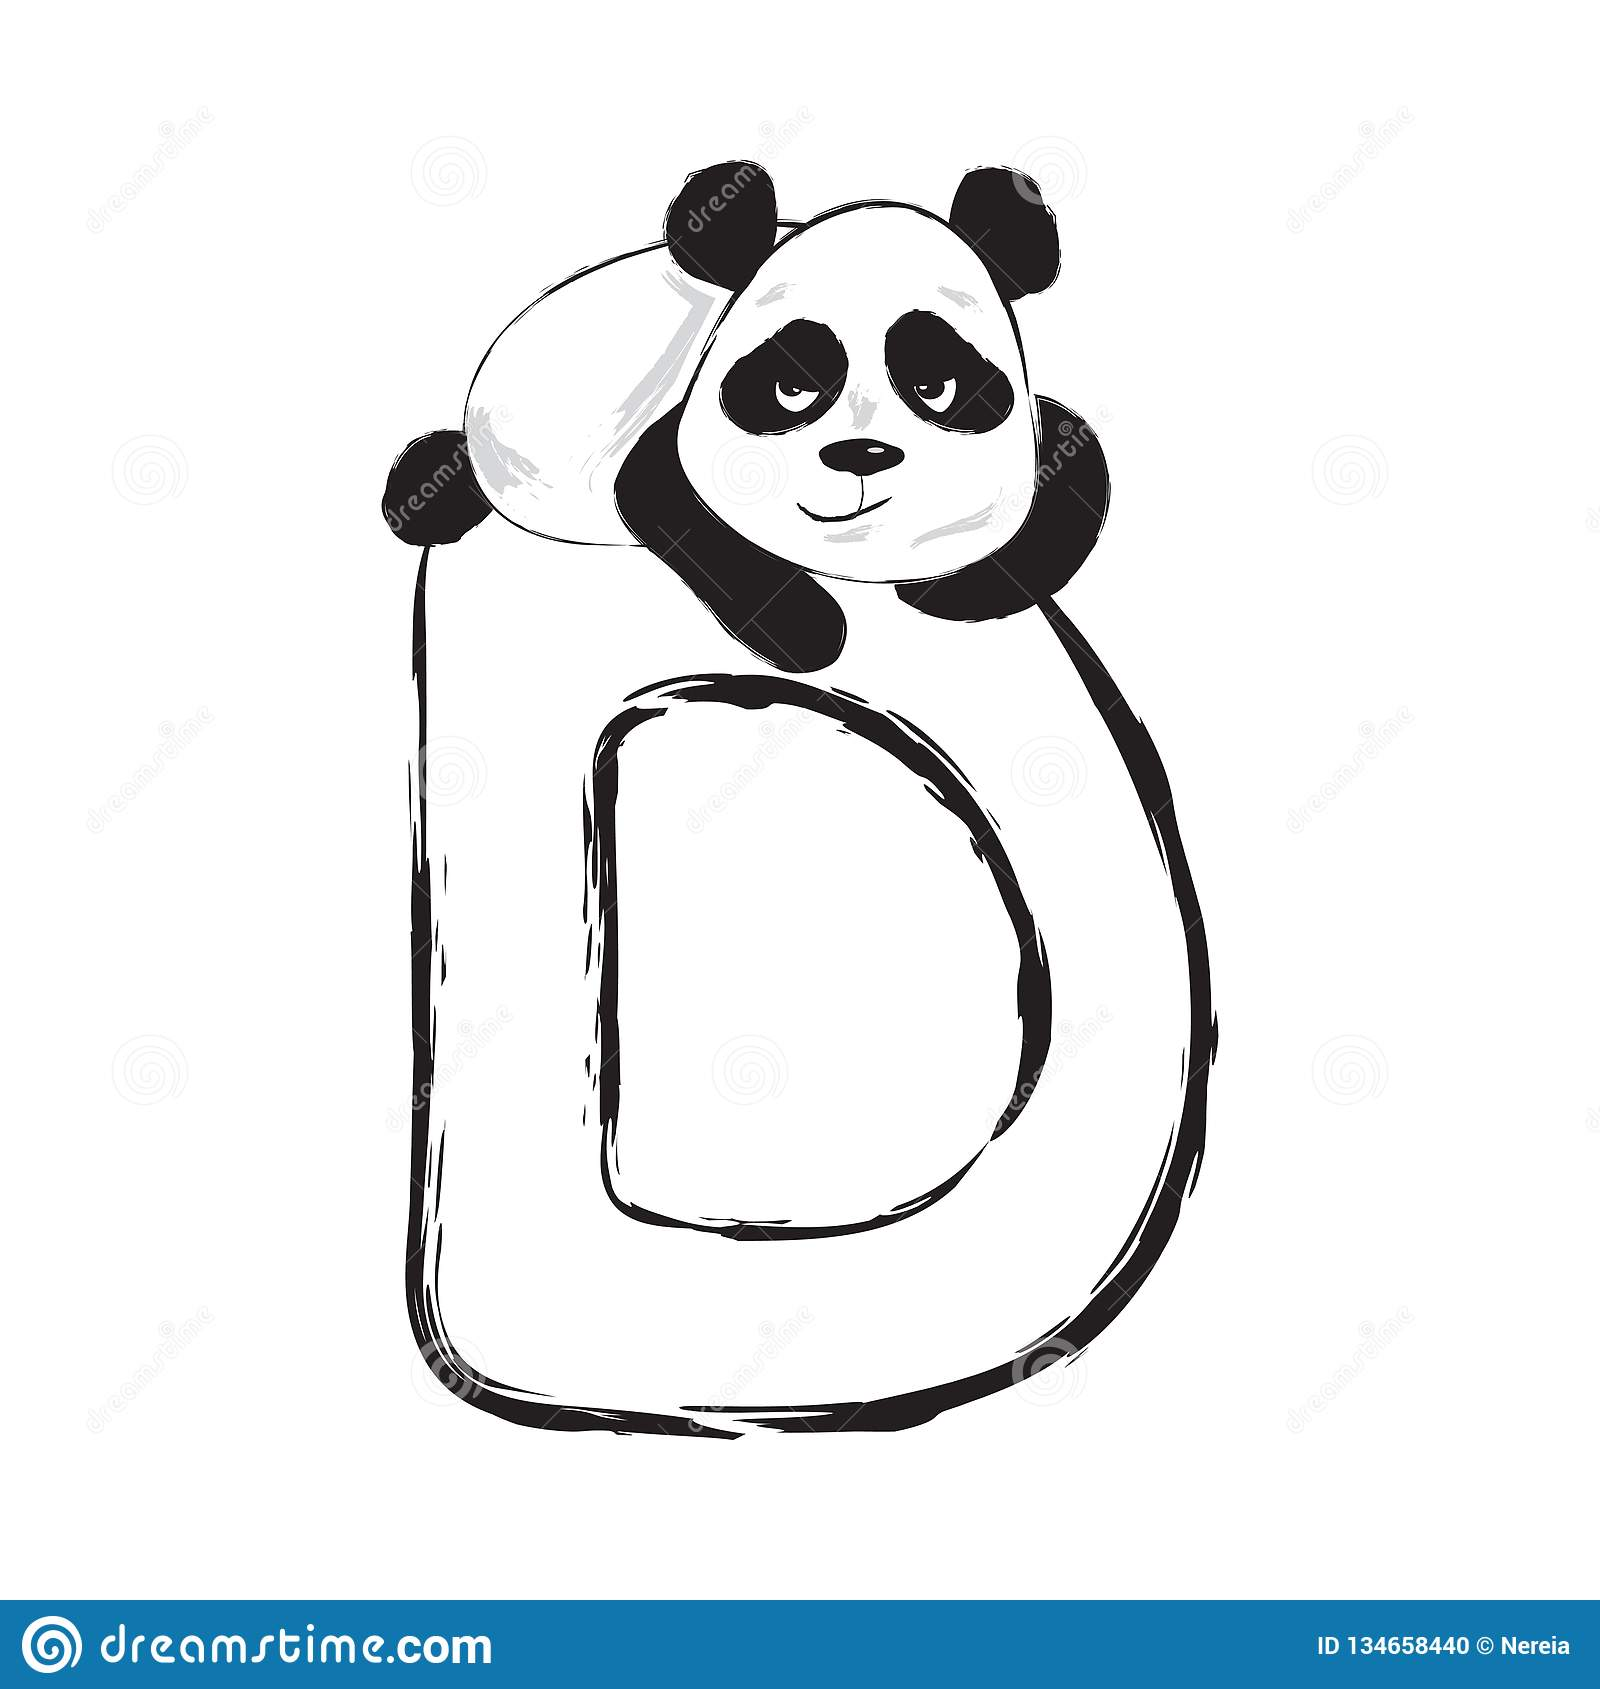 52e3eae22 Panda bear cute animal english alphabet letter D with cartoon baby font  illustrations